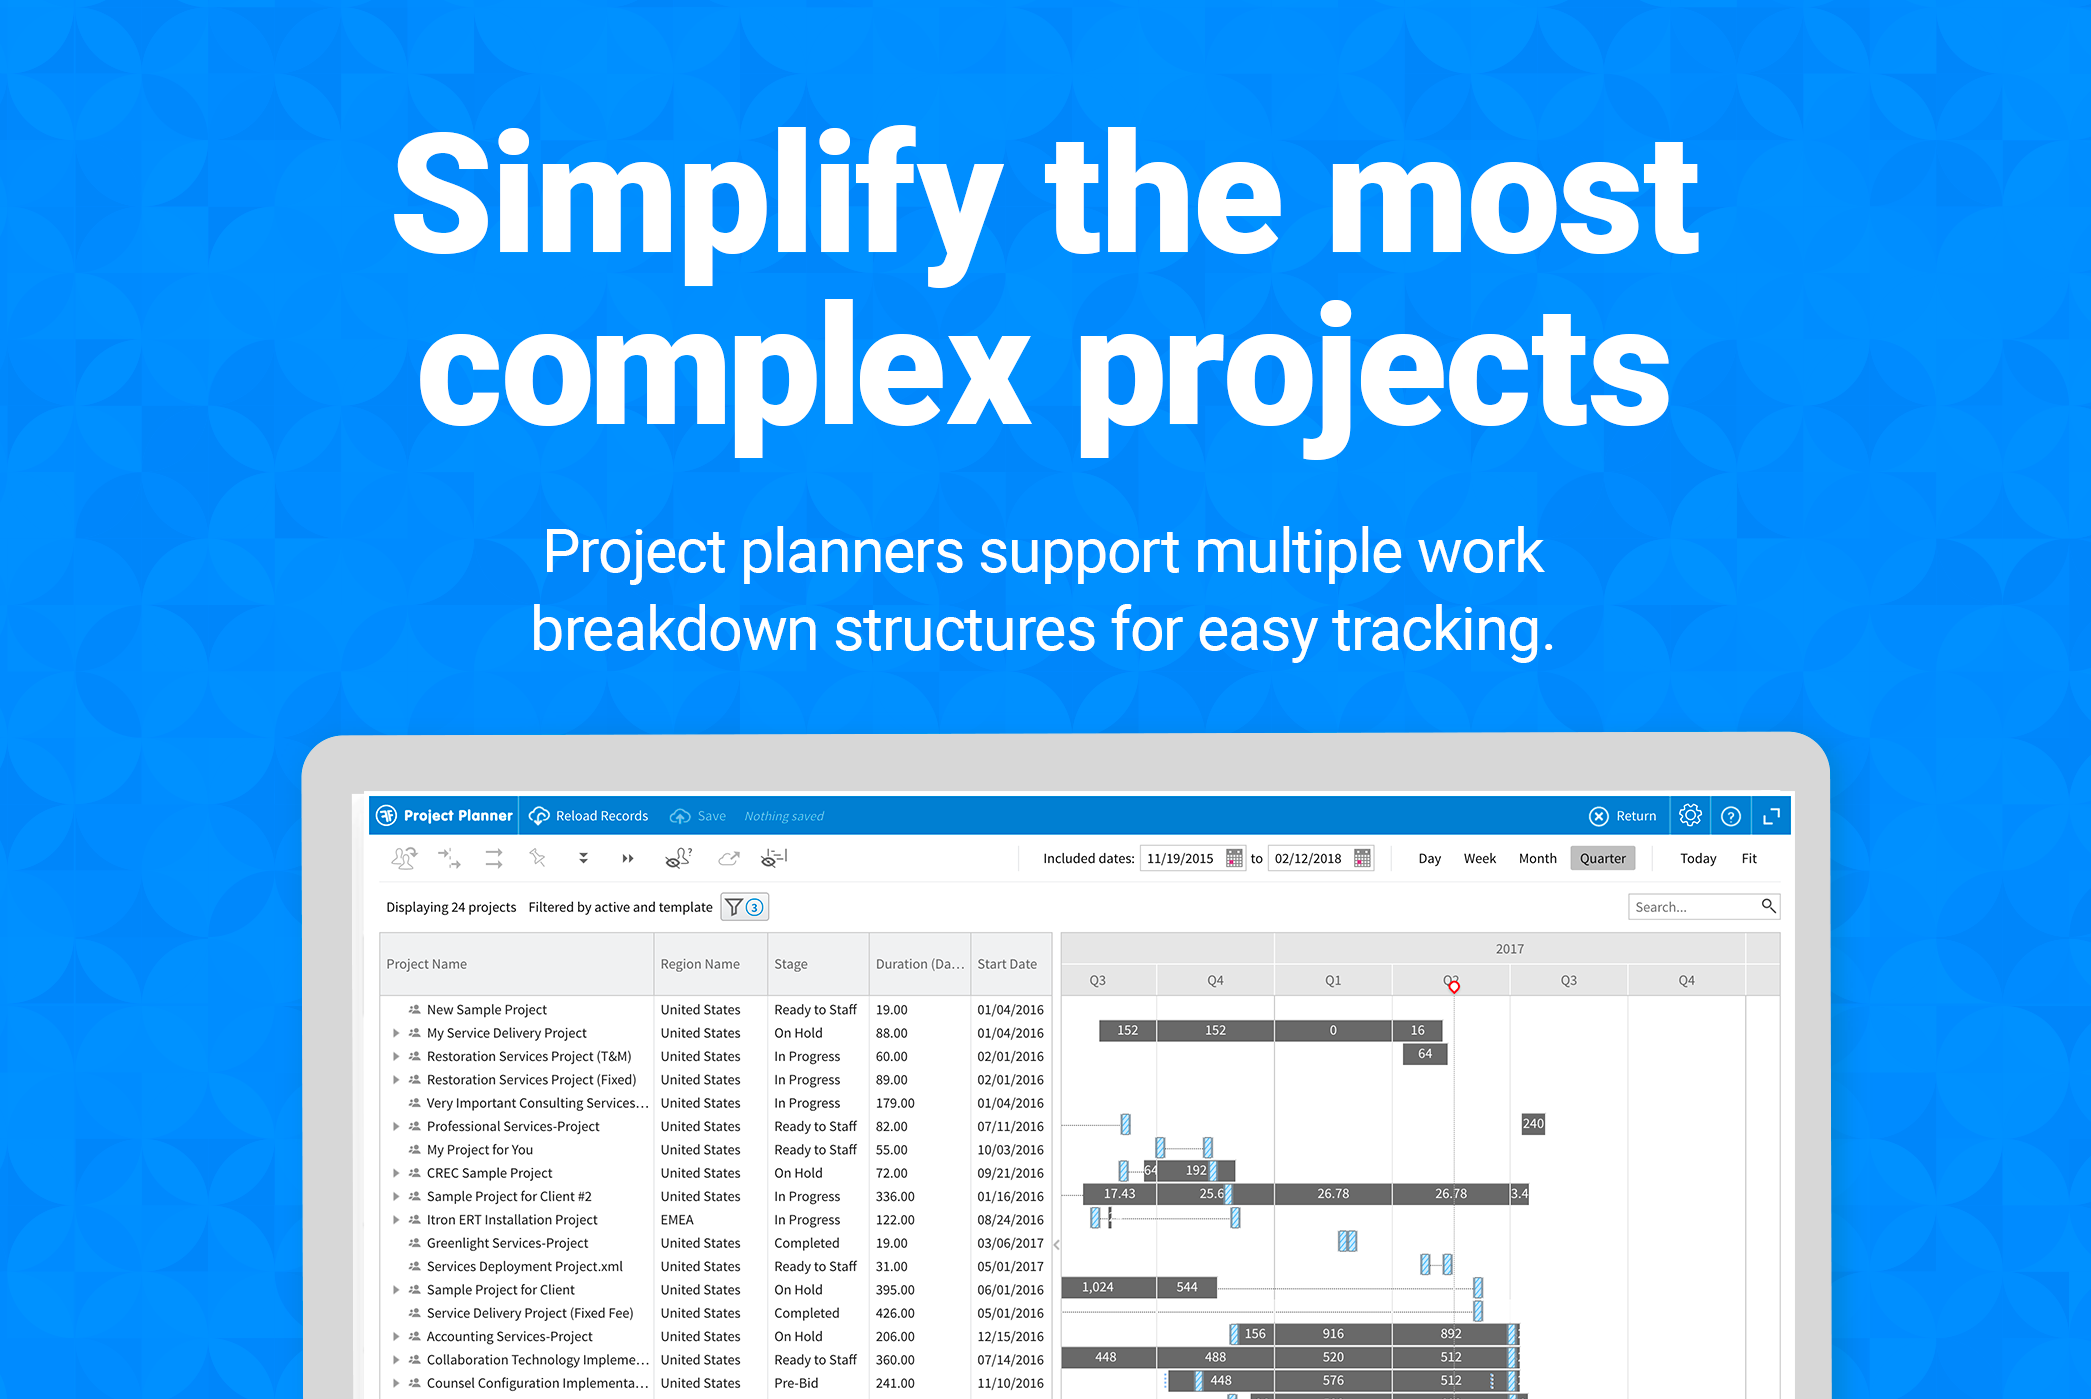 Project planners